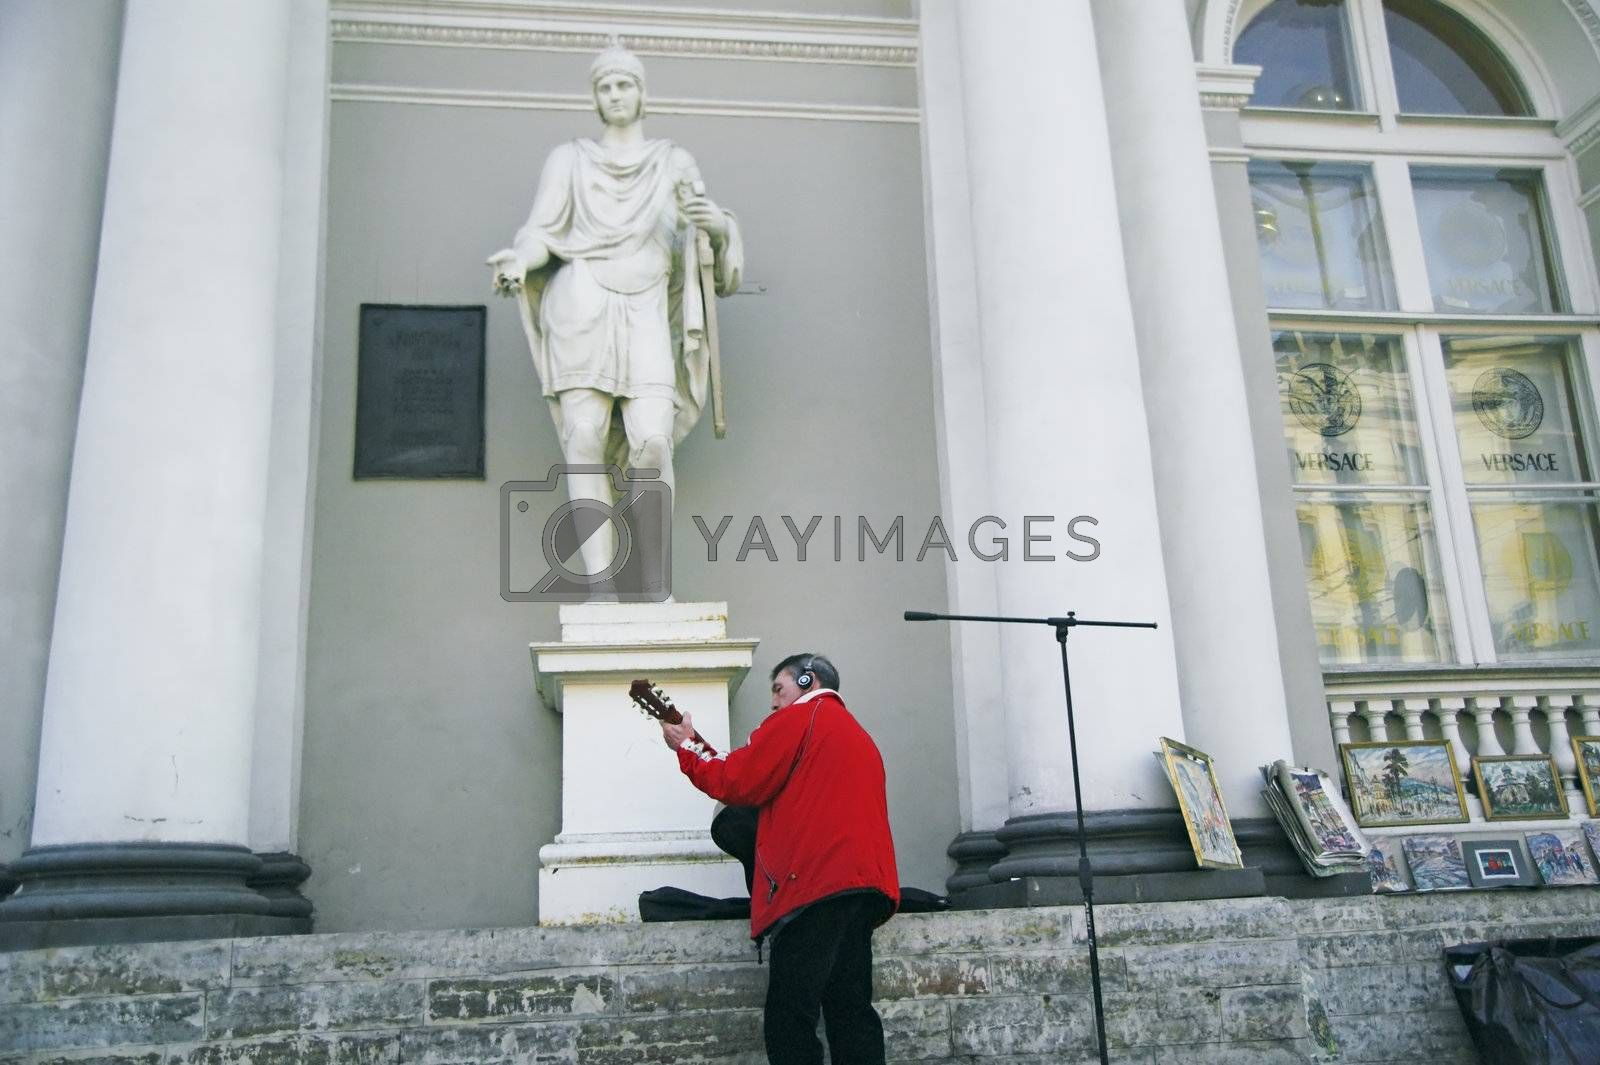 ST PETERSBURG, RUSSIA-MARCH 31, 2008: Street musician playing guitar by sidewalk in front of antique building in Saint Petersburg, Russia